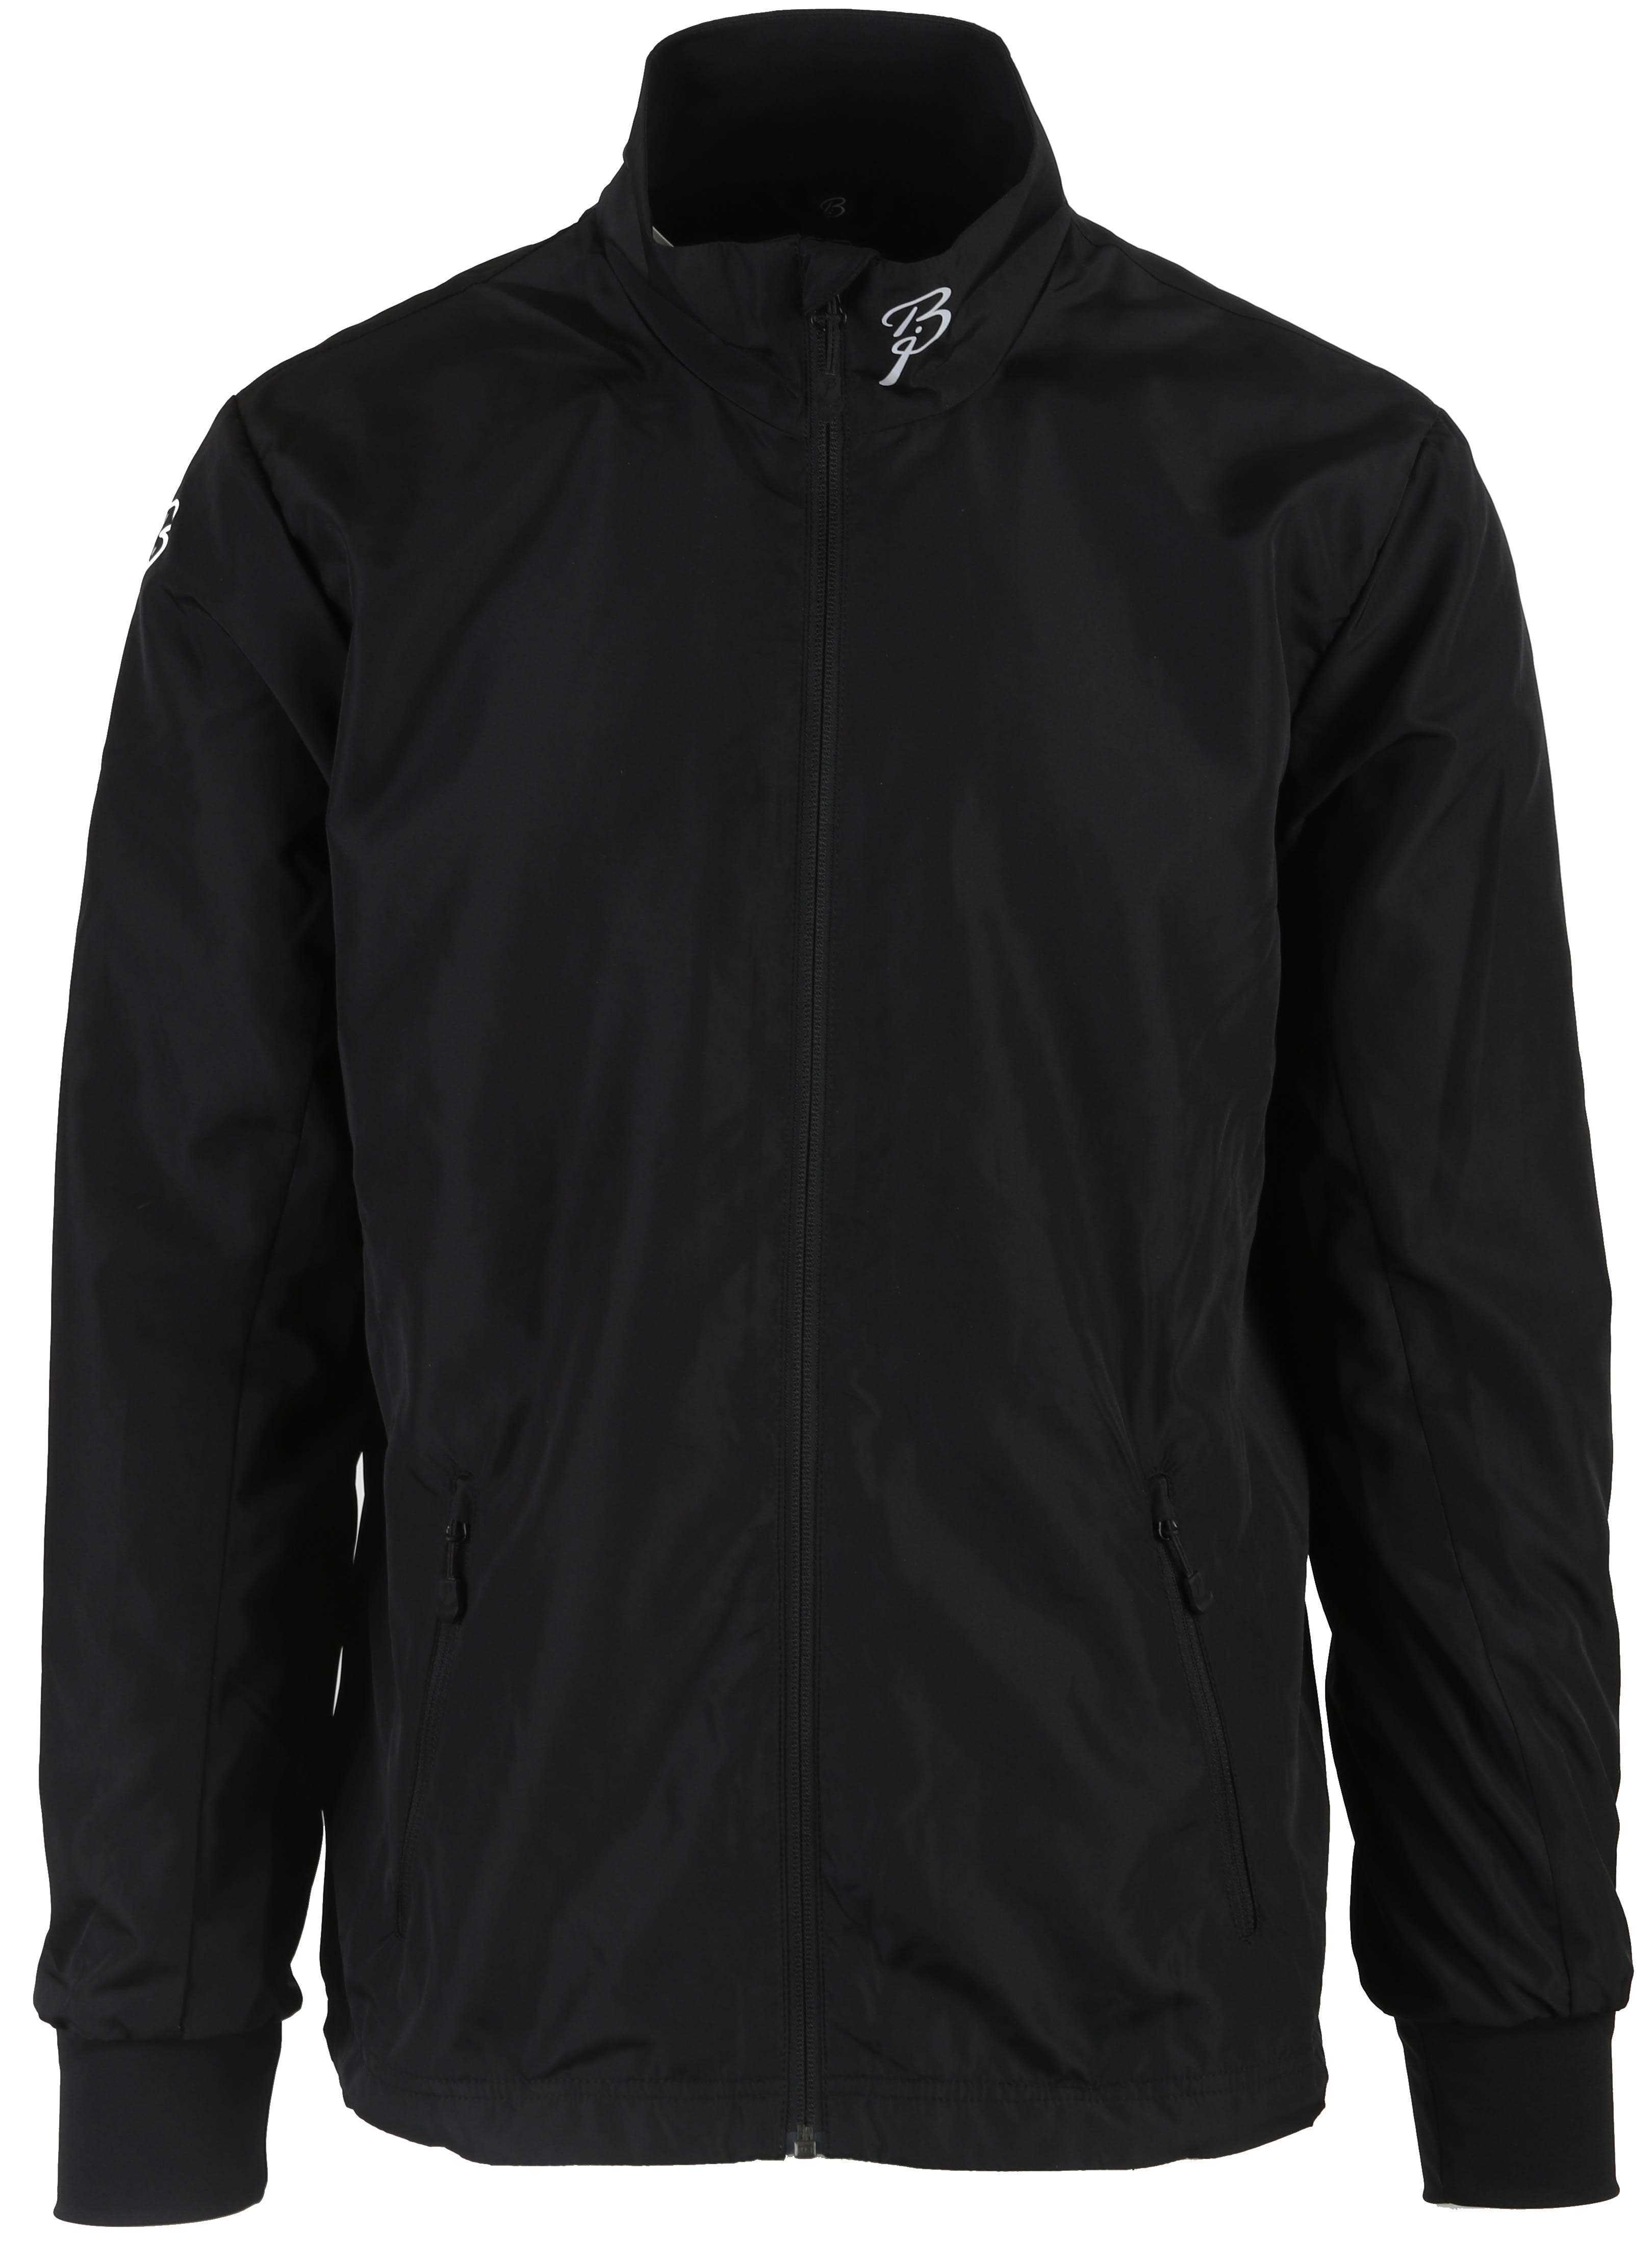 Image of Bjorn Daehlie Drift XC Ski Jacket